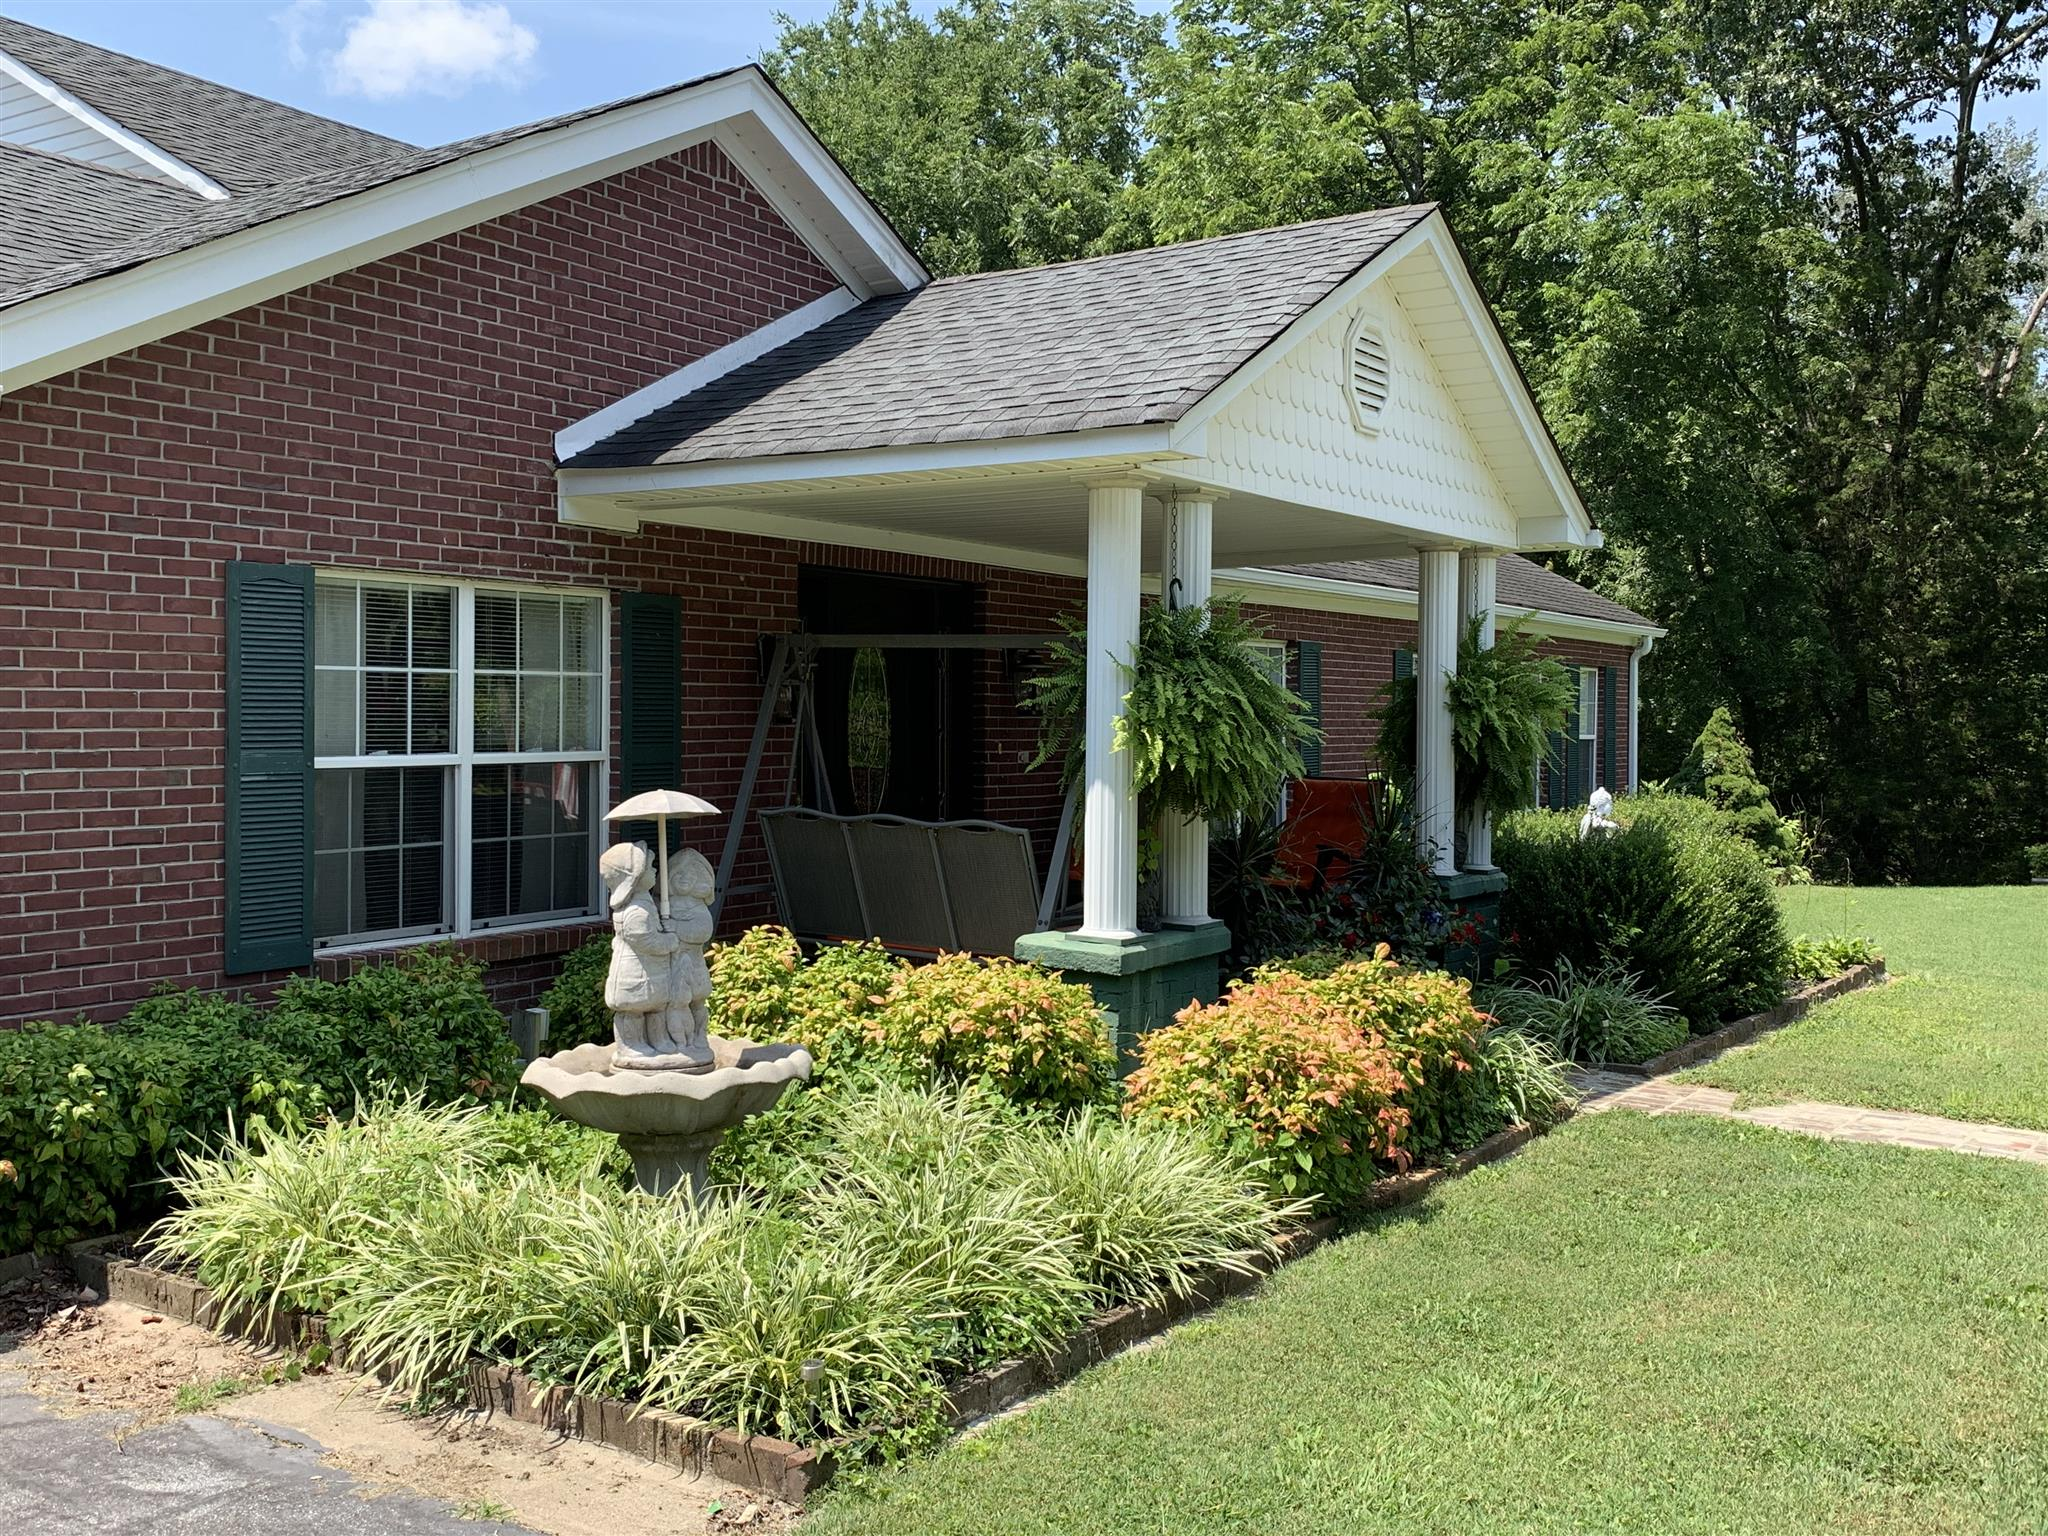 1215 E Gaines St, Lawrenceburg, TN 38464 - Lawrenceburg, TN real estate listing